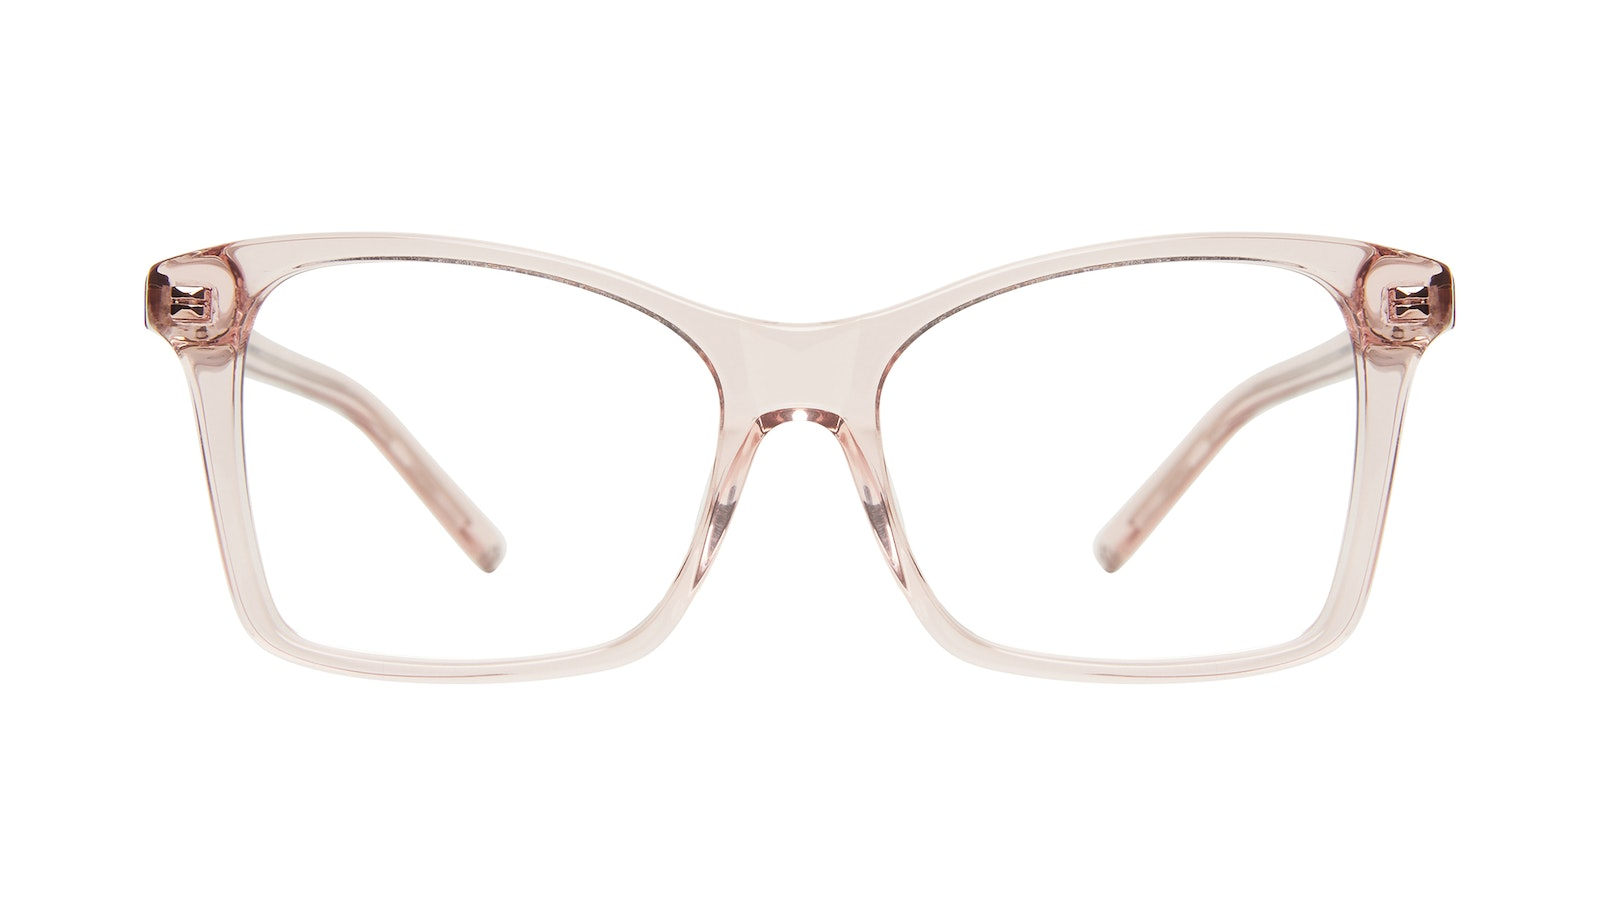 Affordable Fashion Glasses Square Eyeglasses Women Cadence Pink